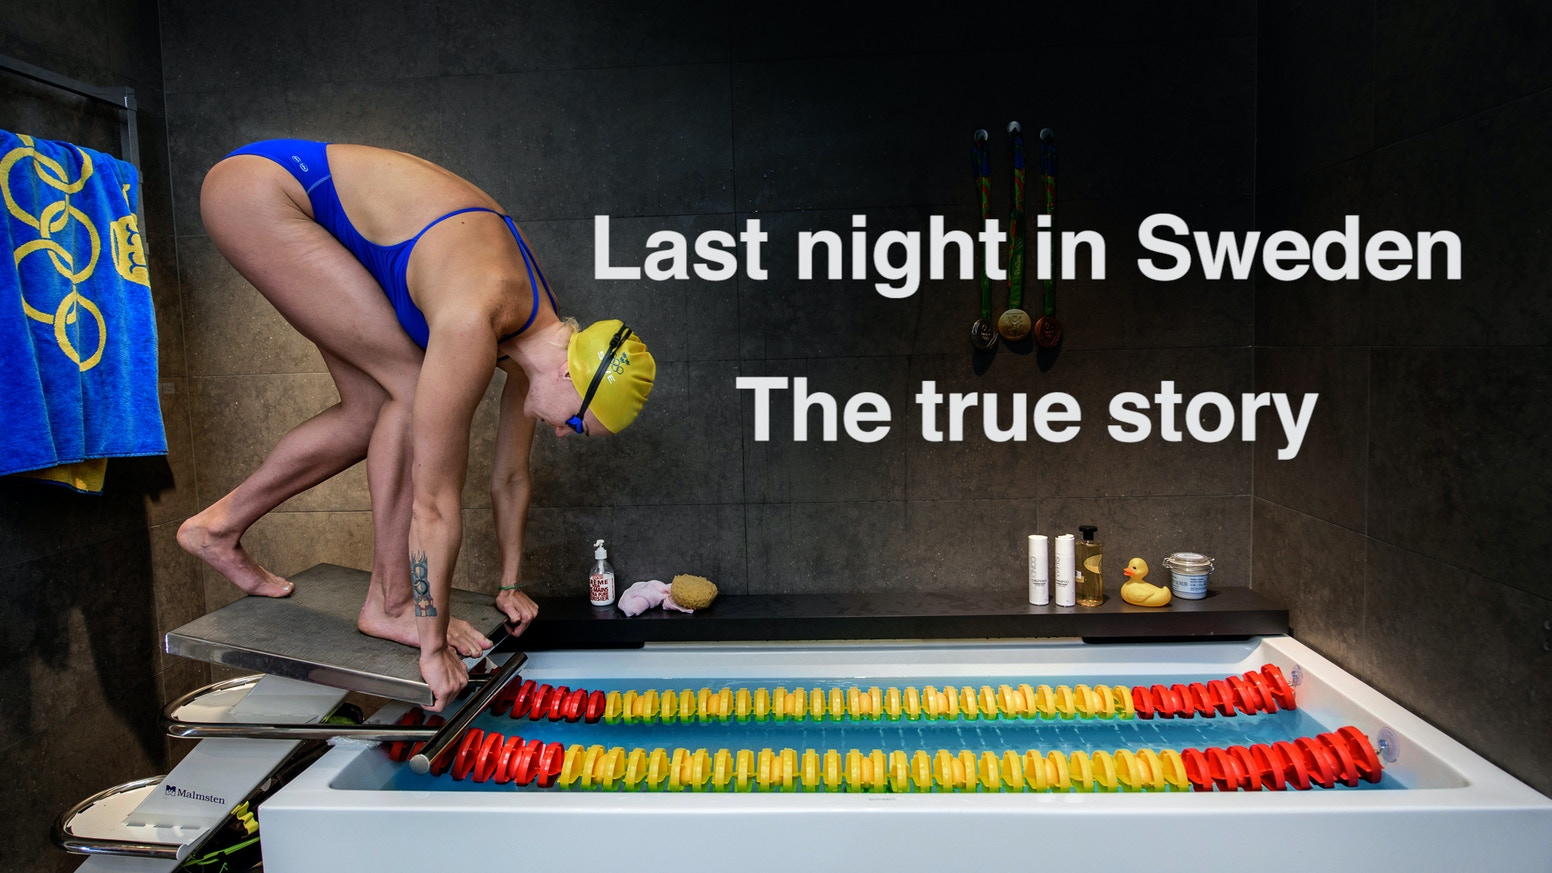 A photography project showing what really happened in Sweden last night.